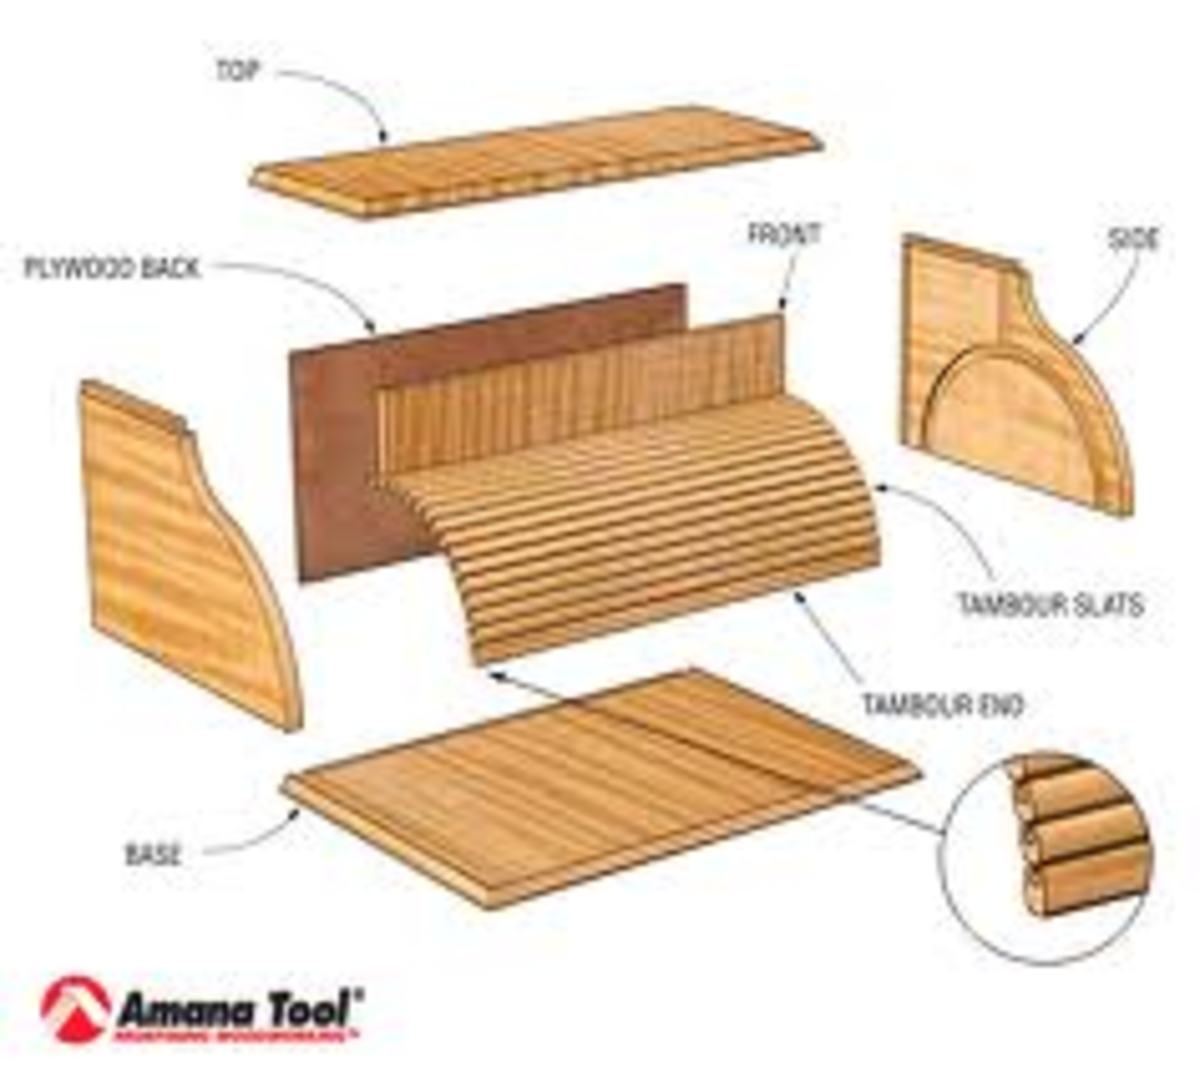 oak roll top desk plans